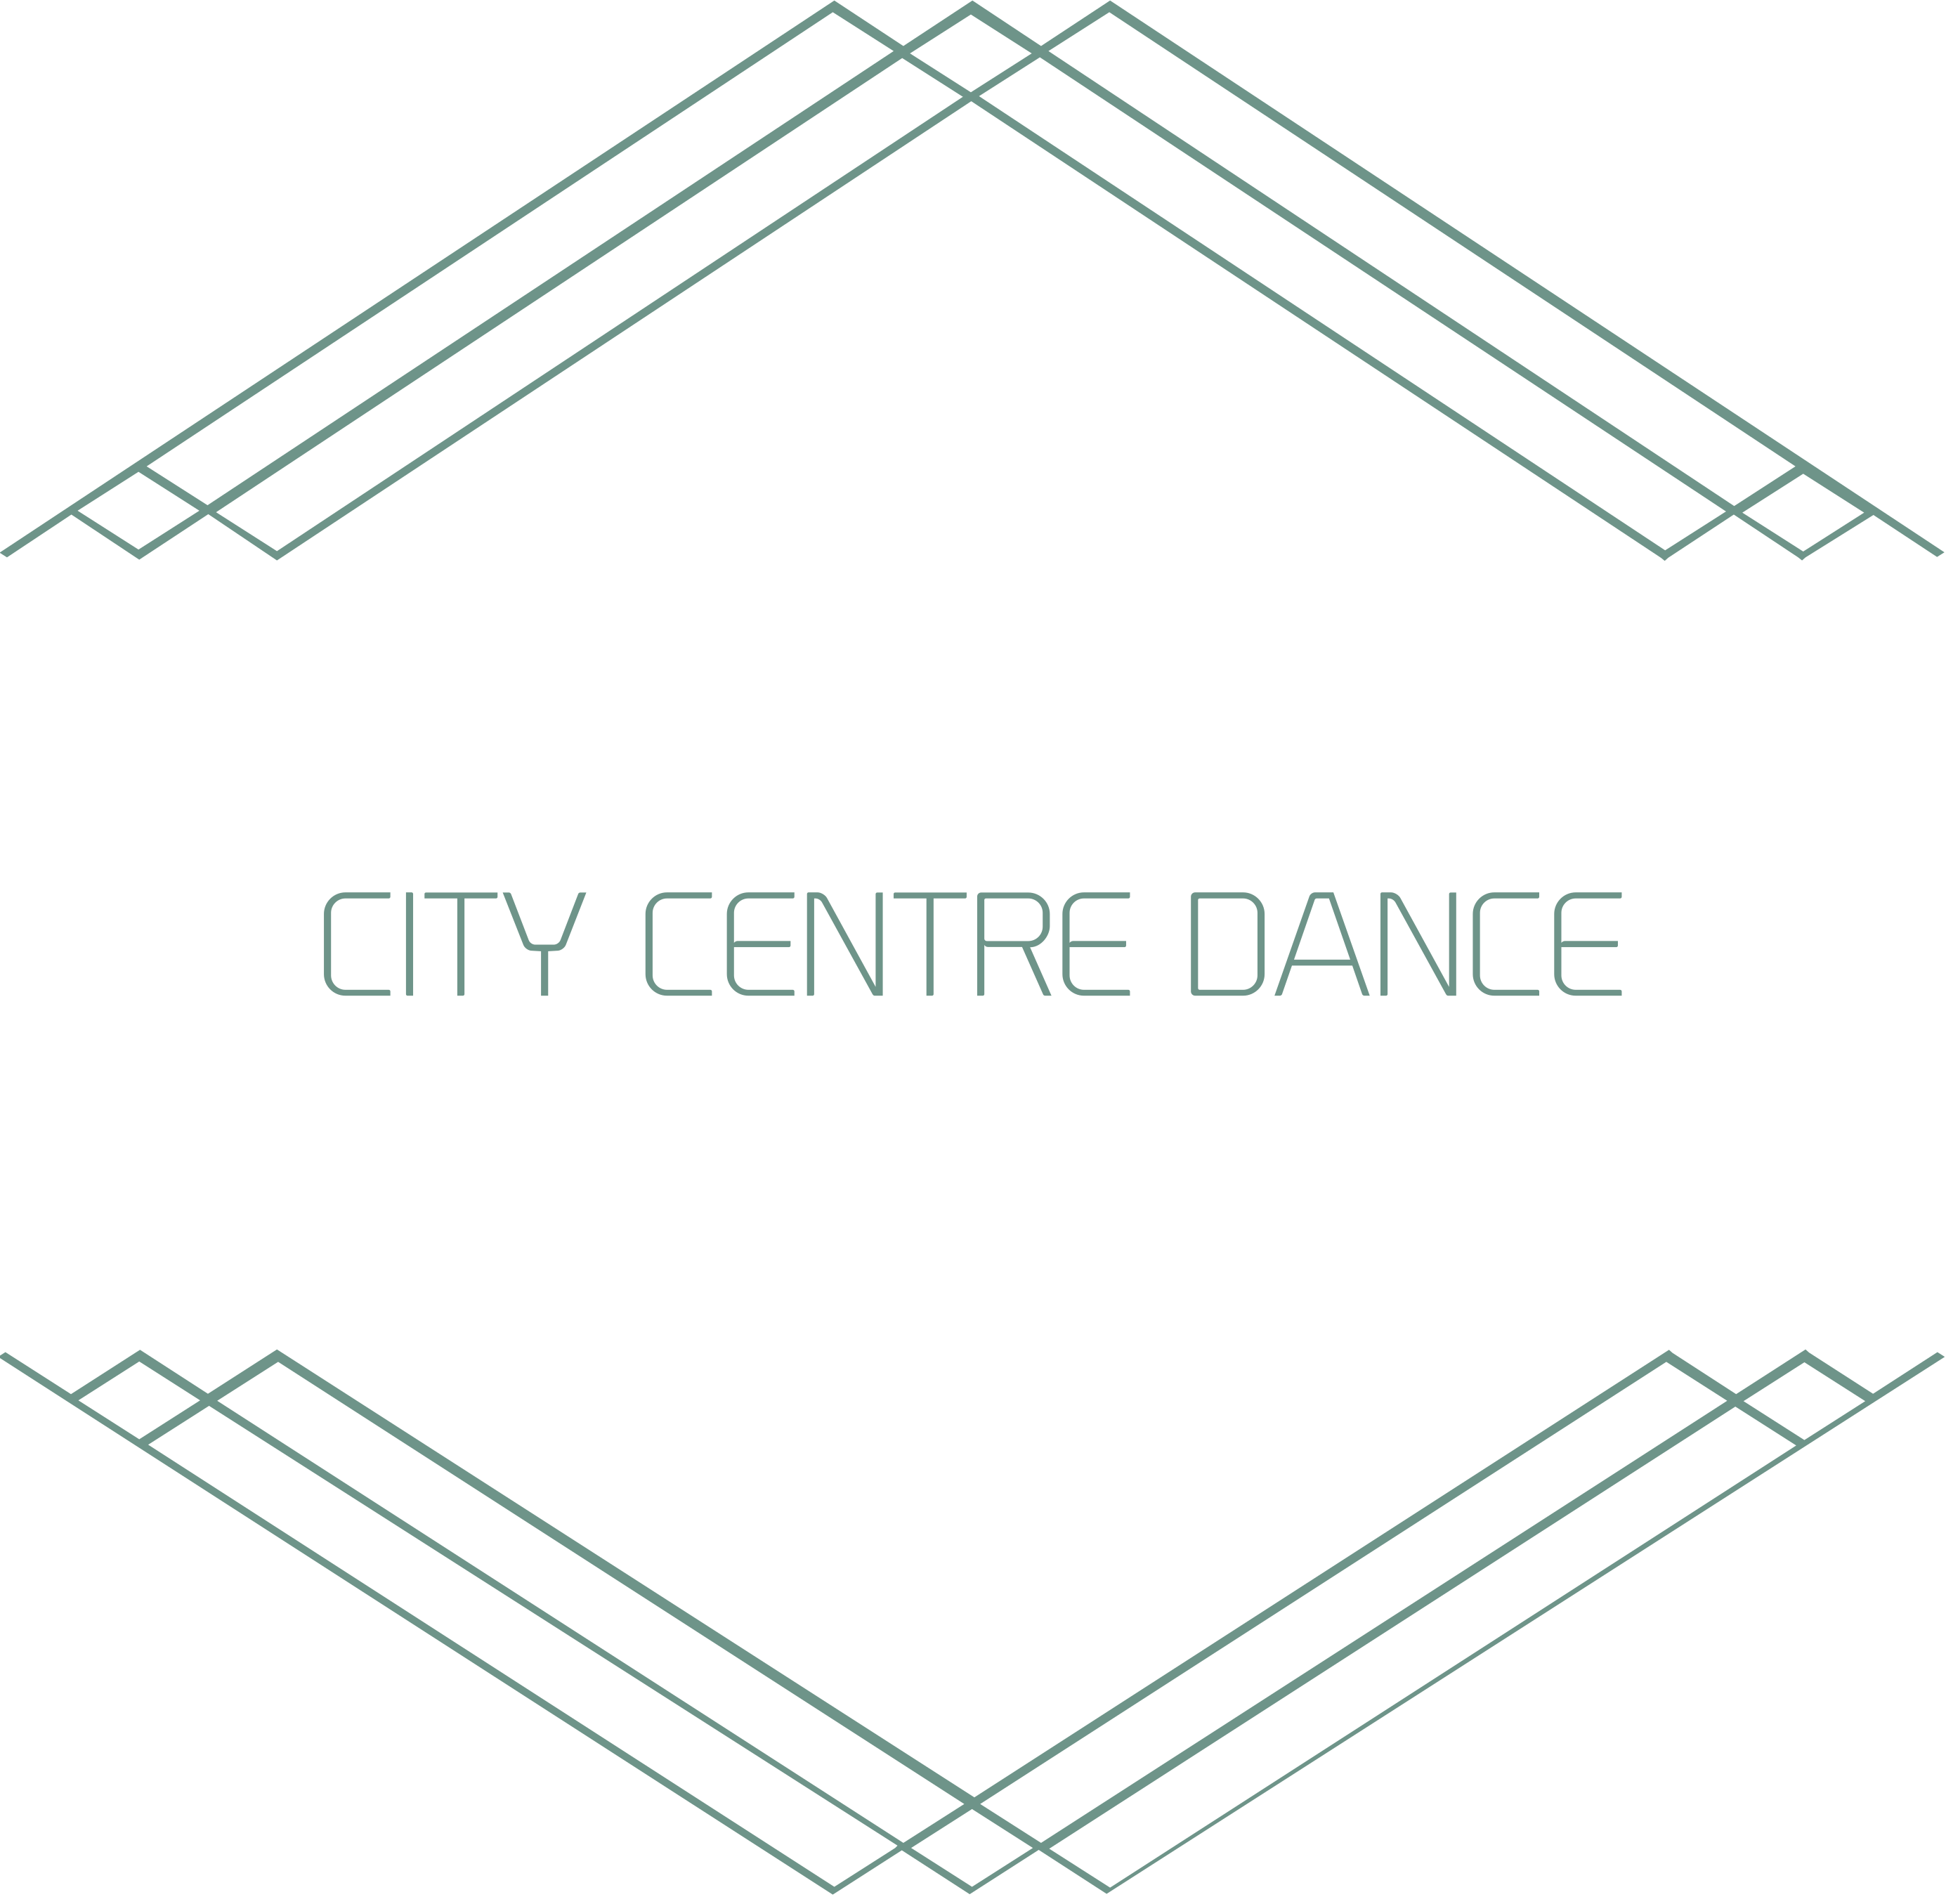 City Centre Dance Mississaugas Hottest Drop In Studio Cool Moves Step By Salsa Diagram